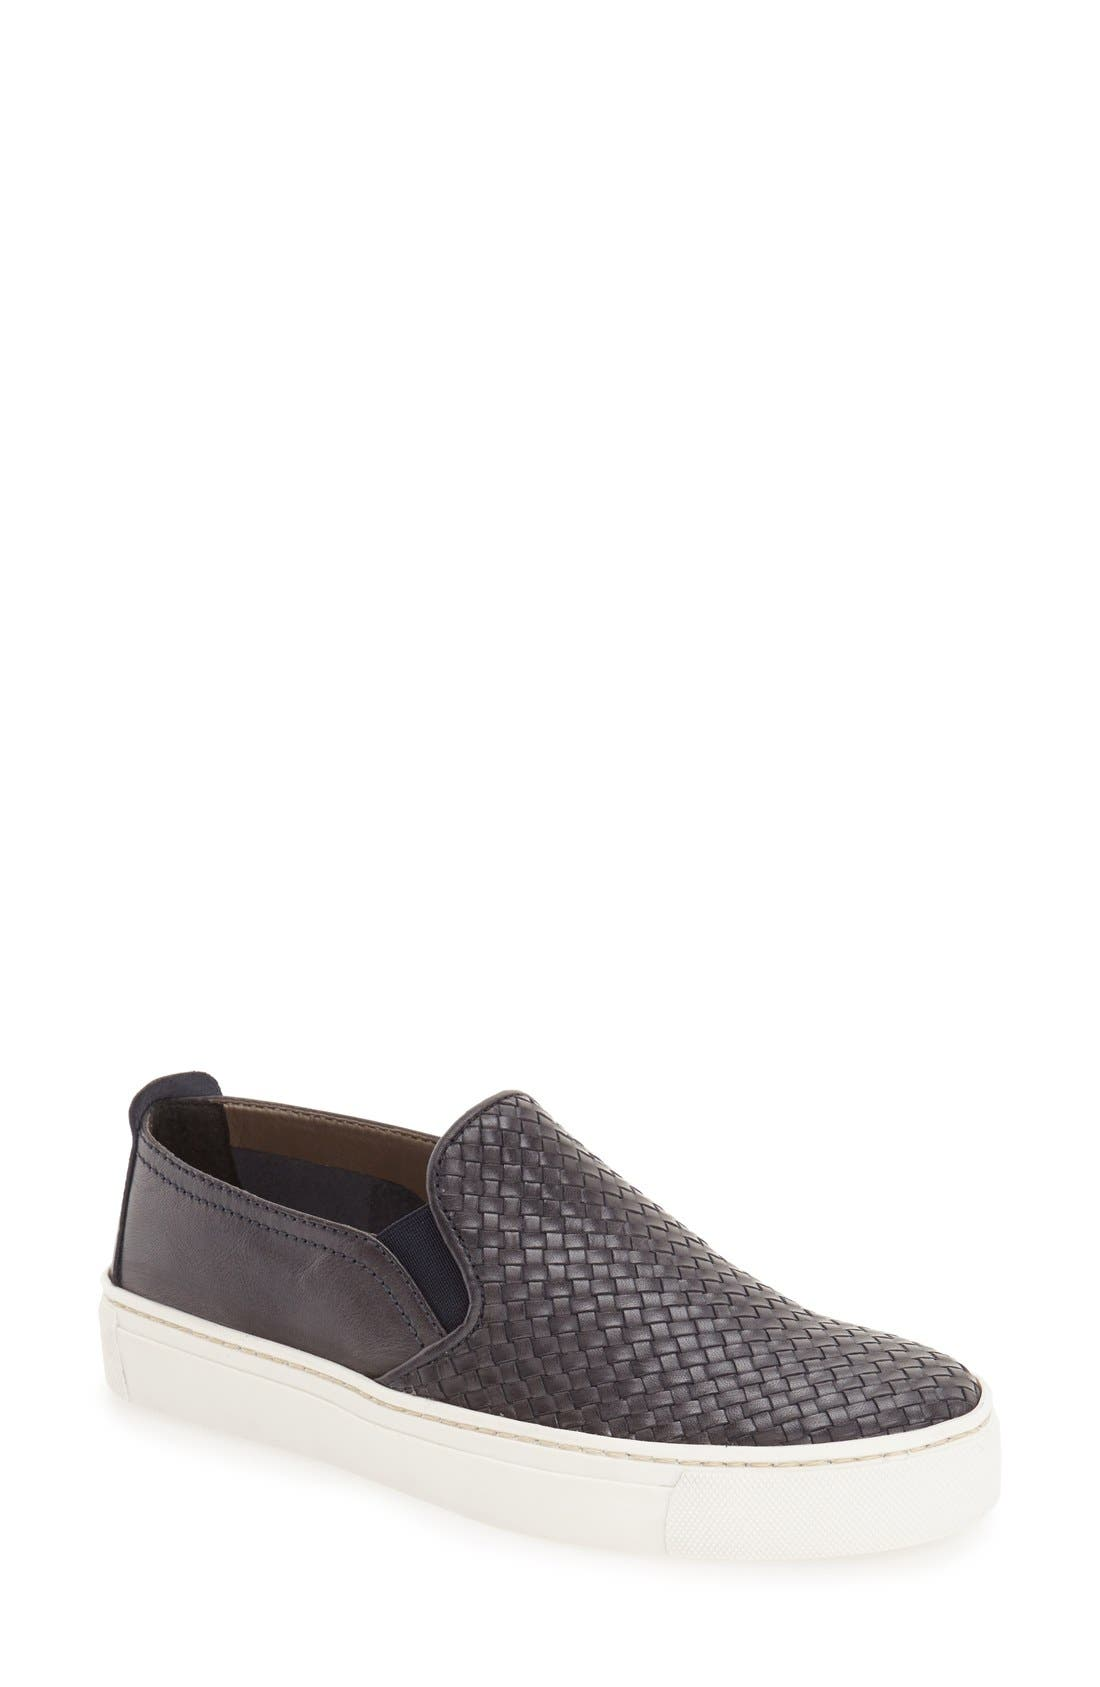 'Sneak Name' Sneaker,                         Main,                         color, Navy Leather